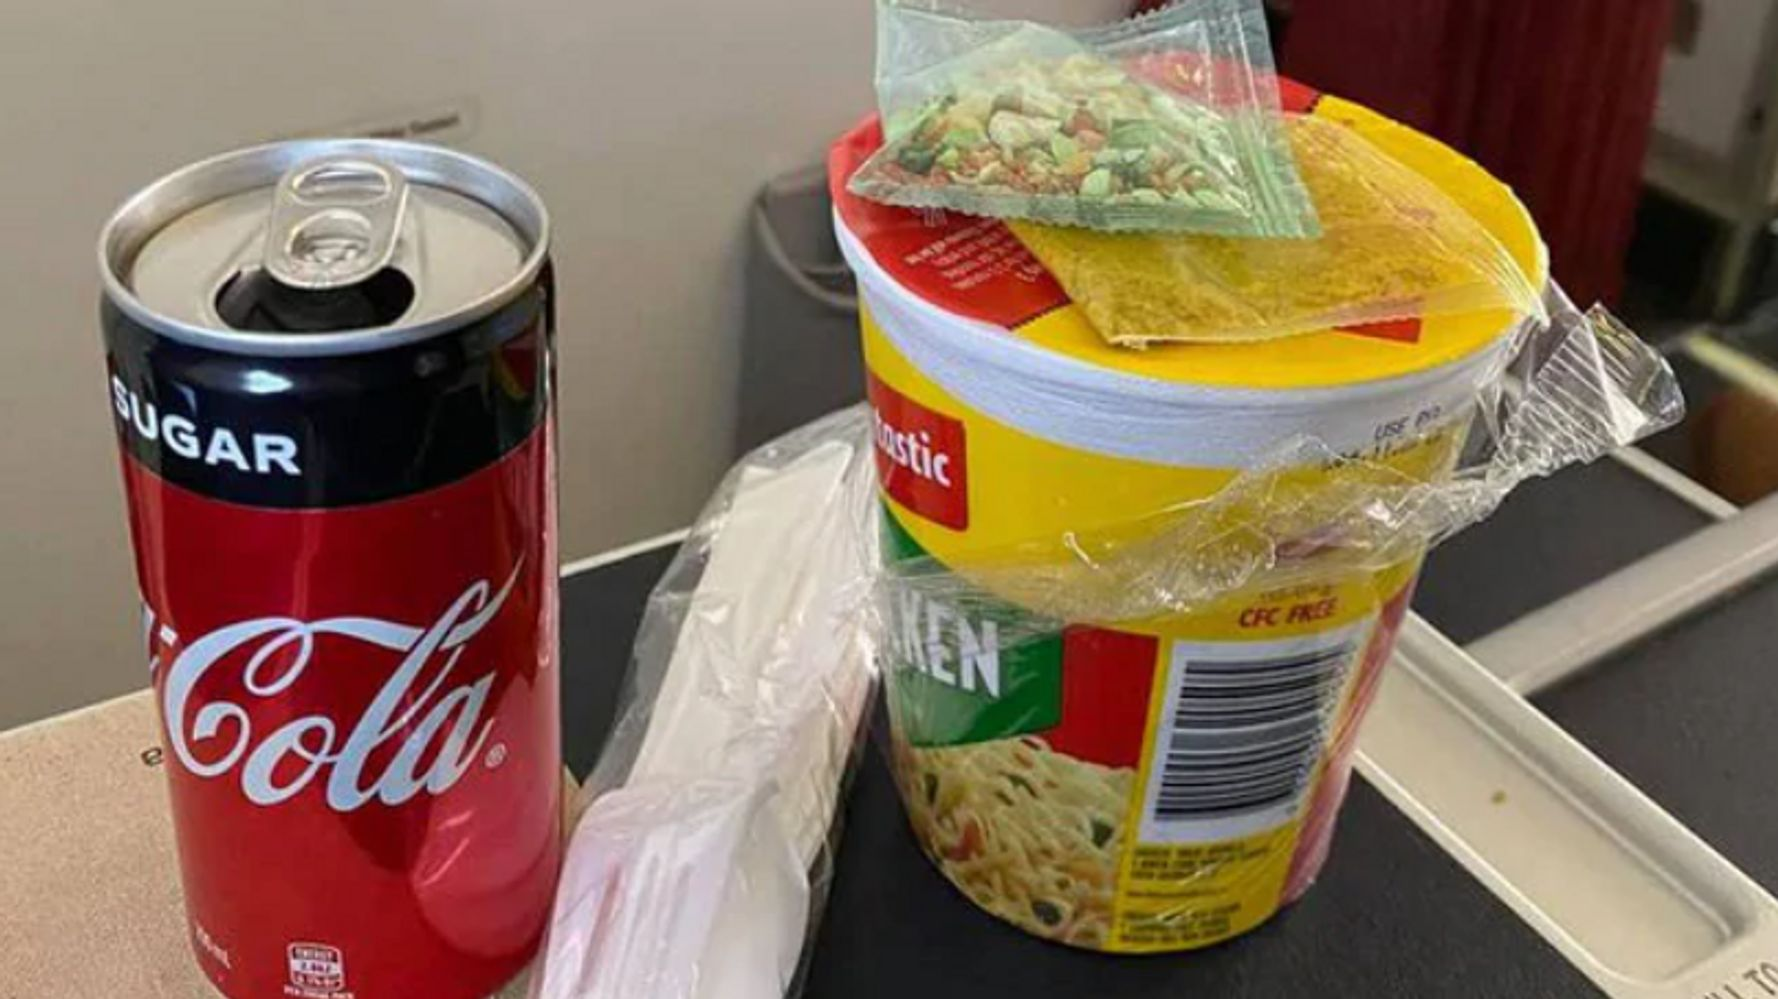 Virgin Australia Business Class Passenger Outraged Over 80-Cent Instant Noodle Meal